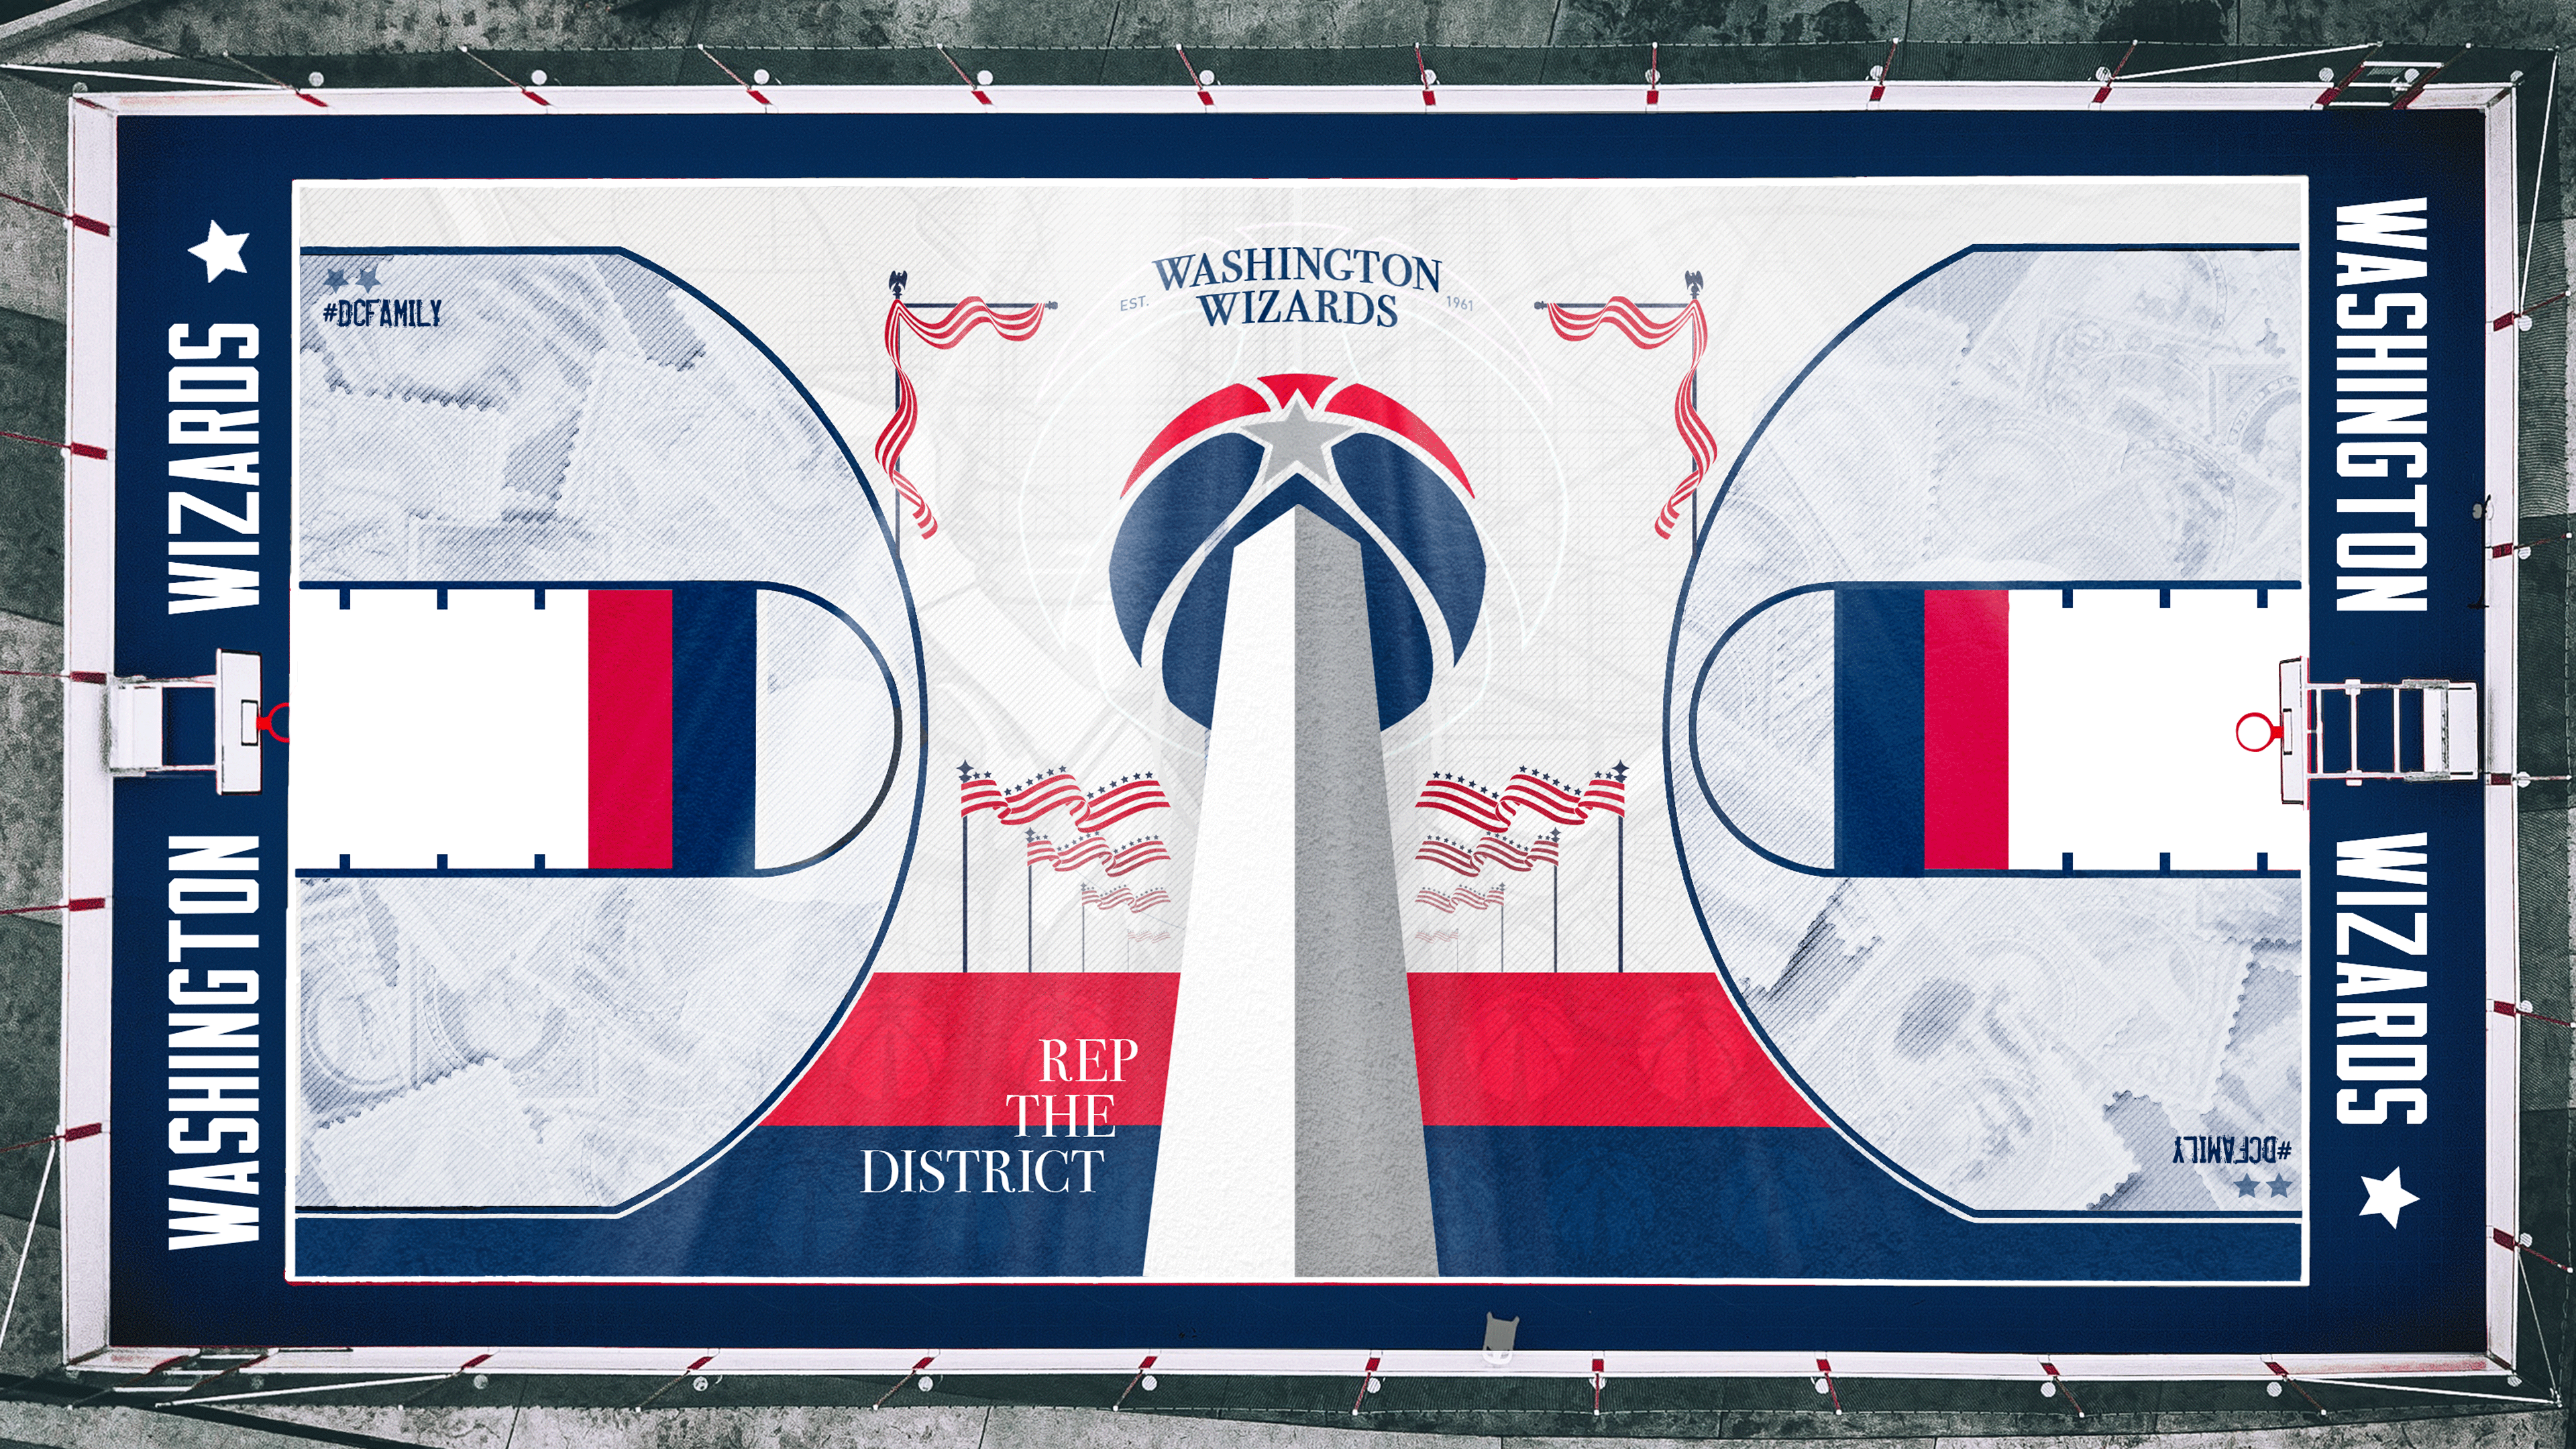 Washington Wizards outdoors court